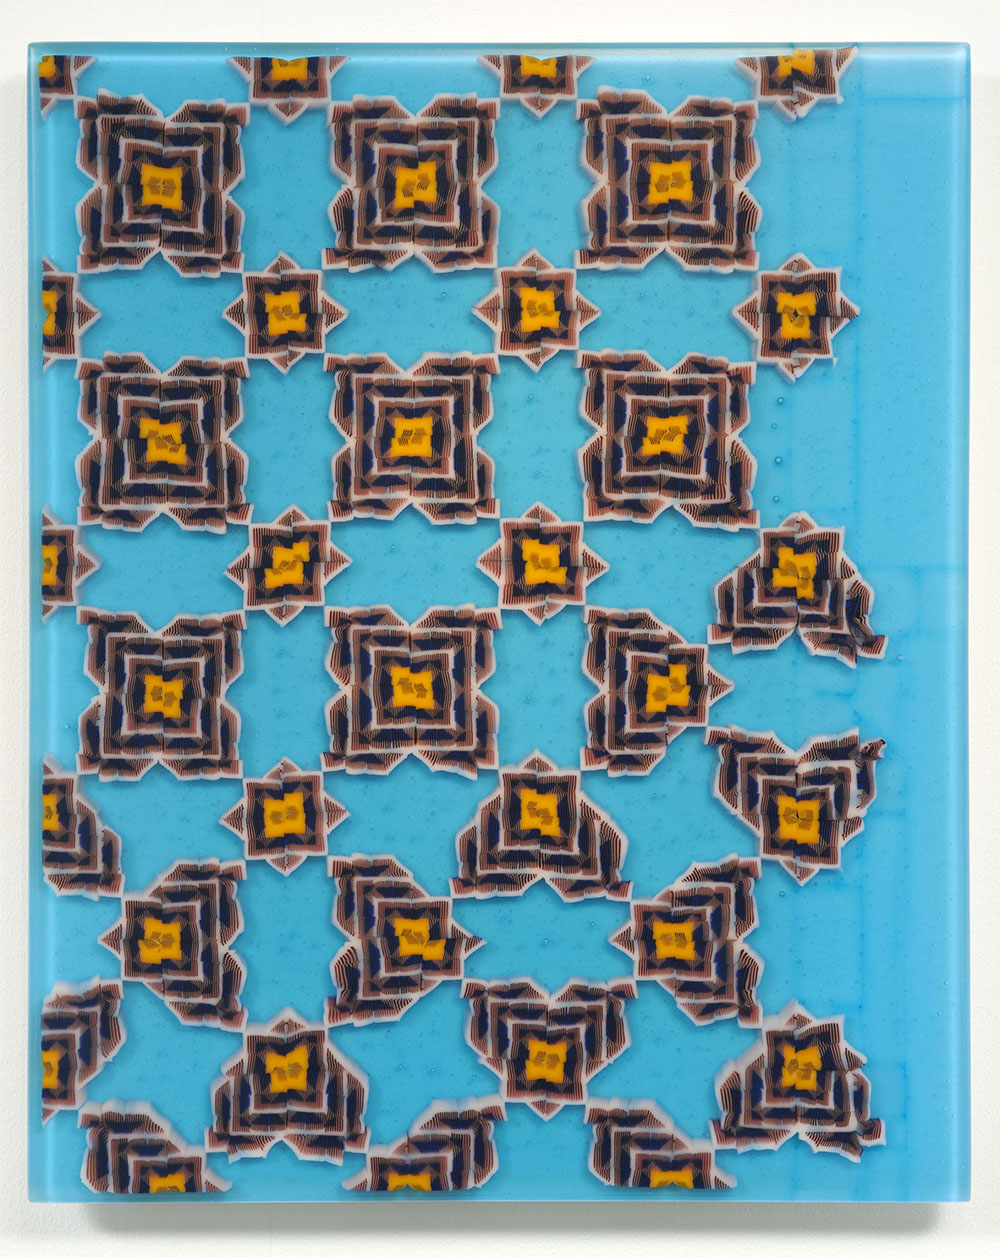 Untitled (Moresque Pattern) No. 5